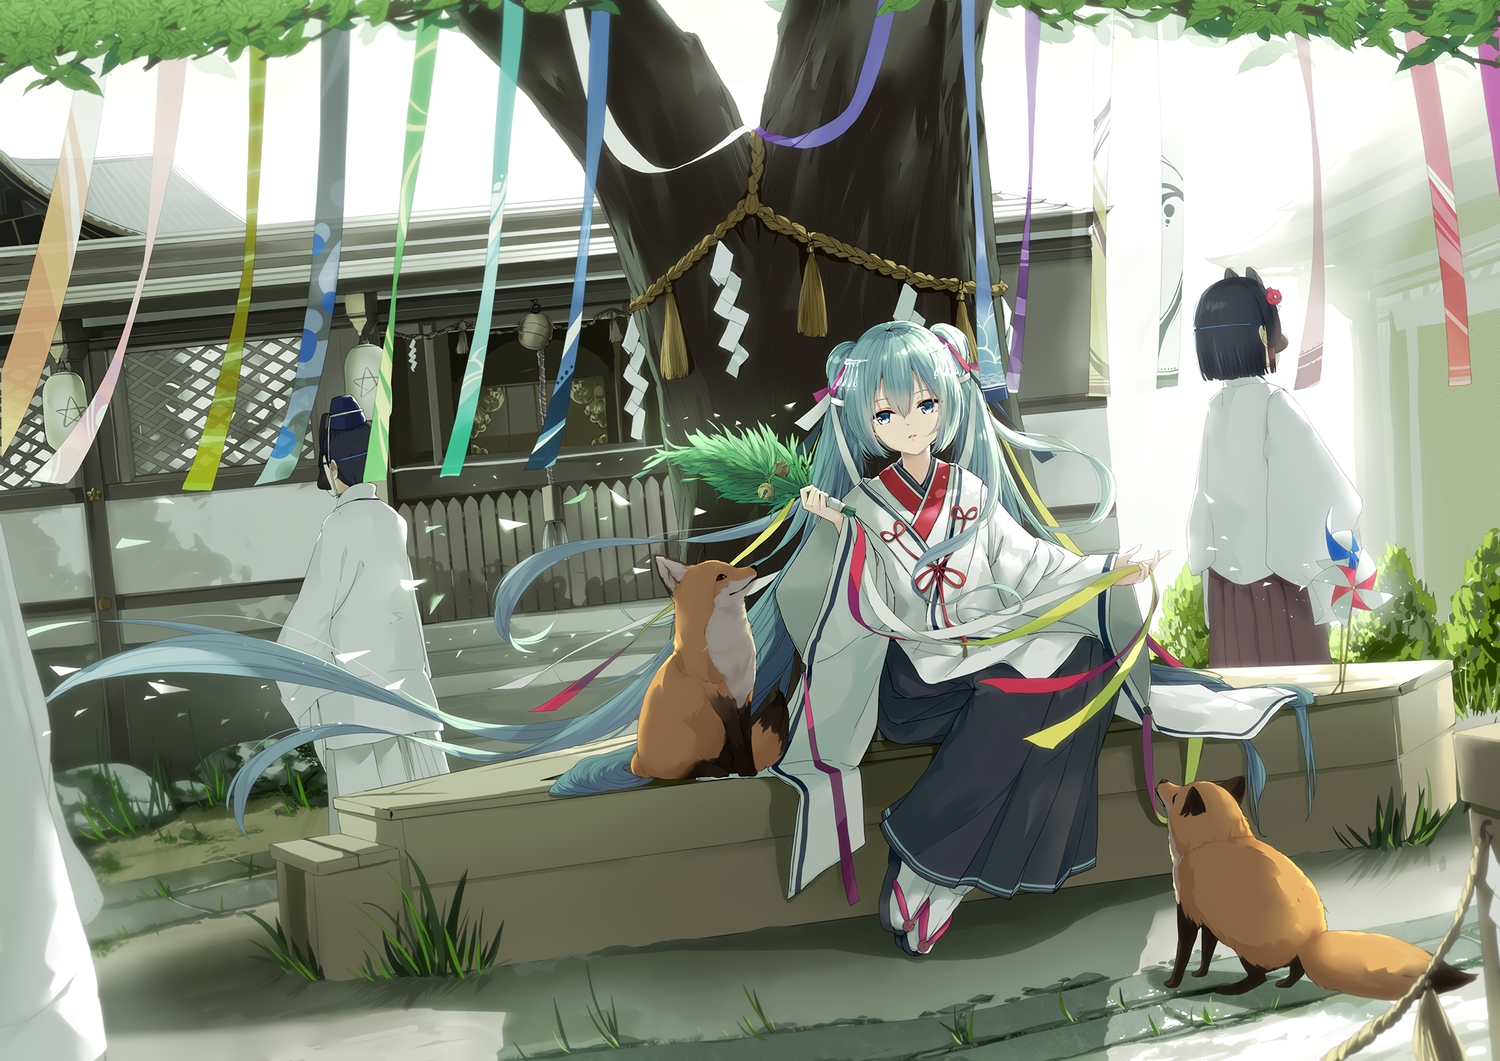 animal bell blue_eyes building fox grass green_hair hatsune_miku japanese_clothes kyod+ long_hair male mask miko ribbons rope shrine tree twintails vocaloid